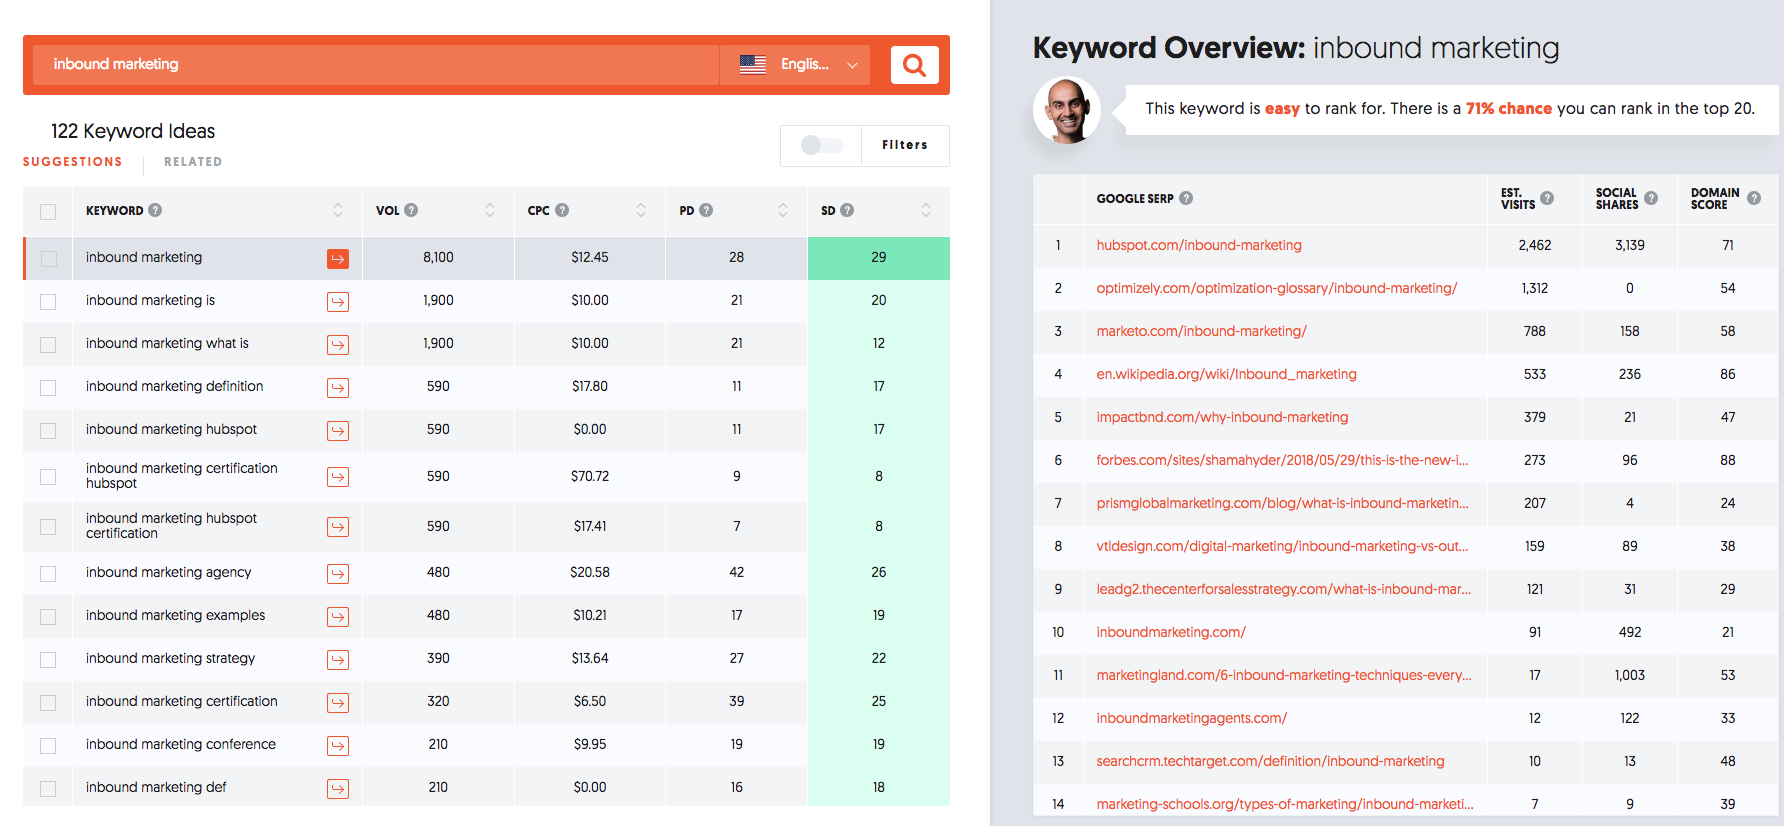 8 SEO Tools to Help Guide your Content Strategy in 2019